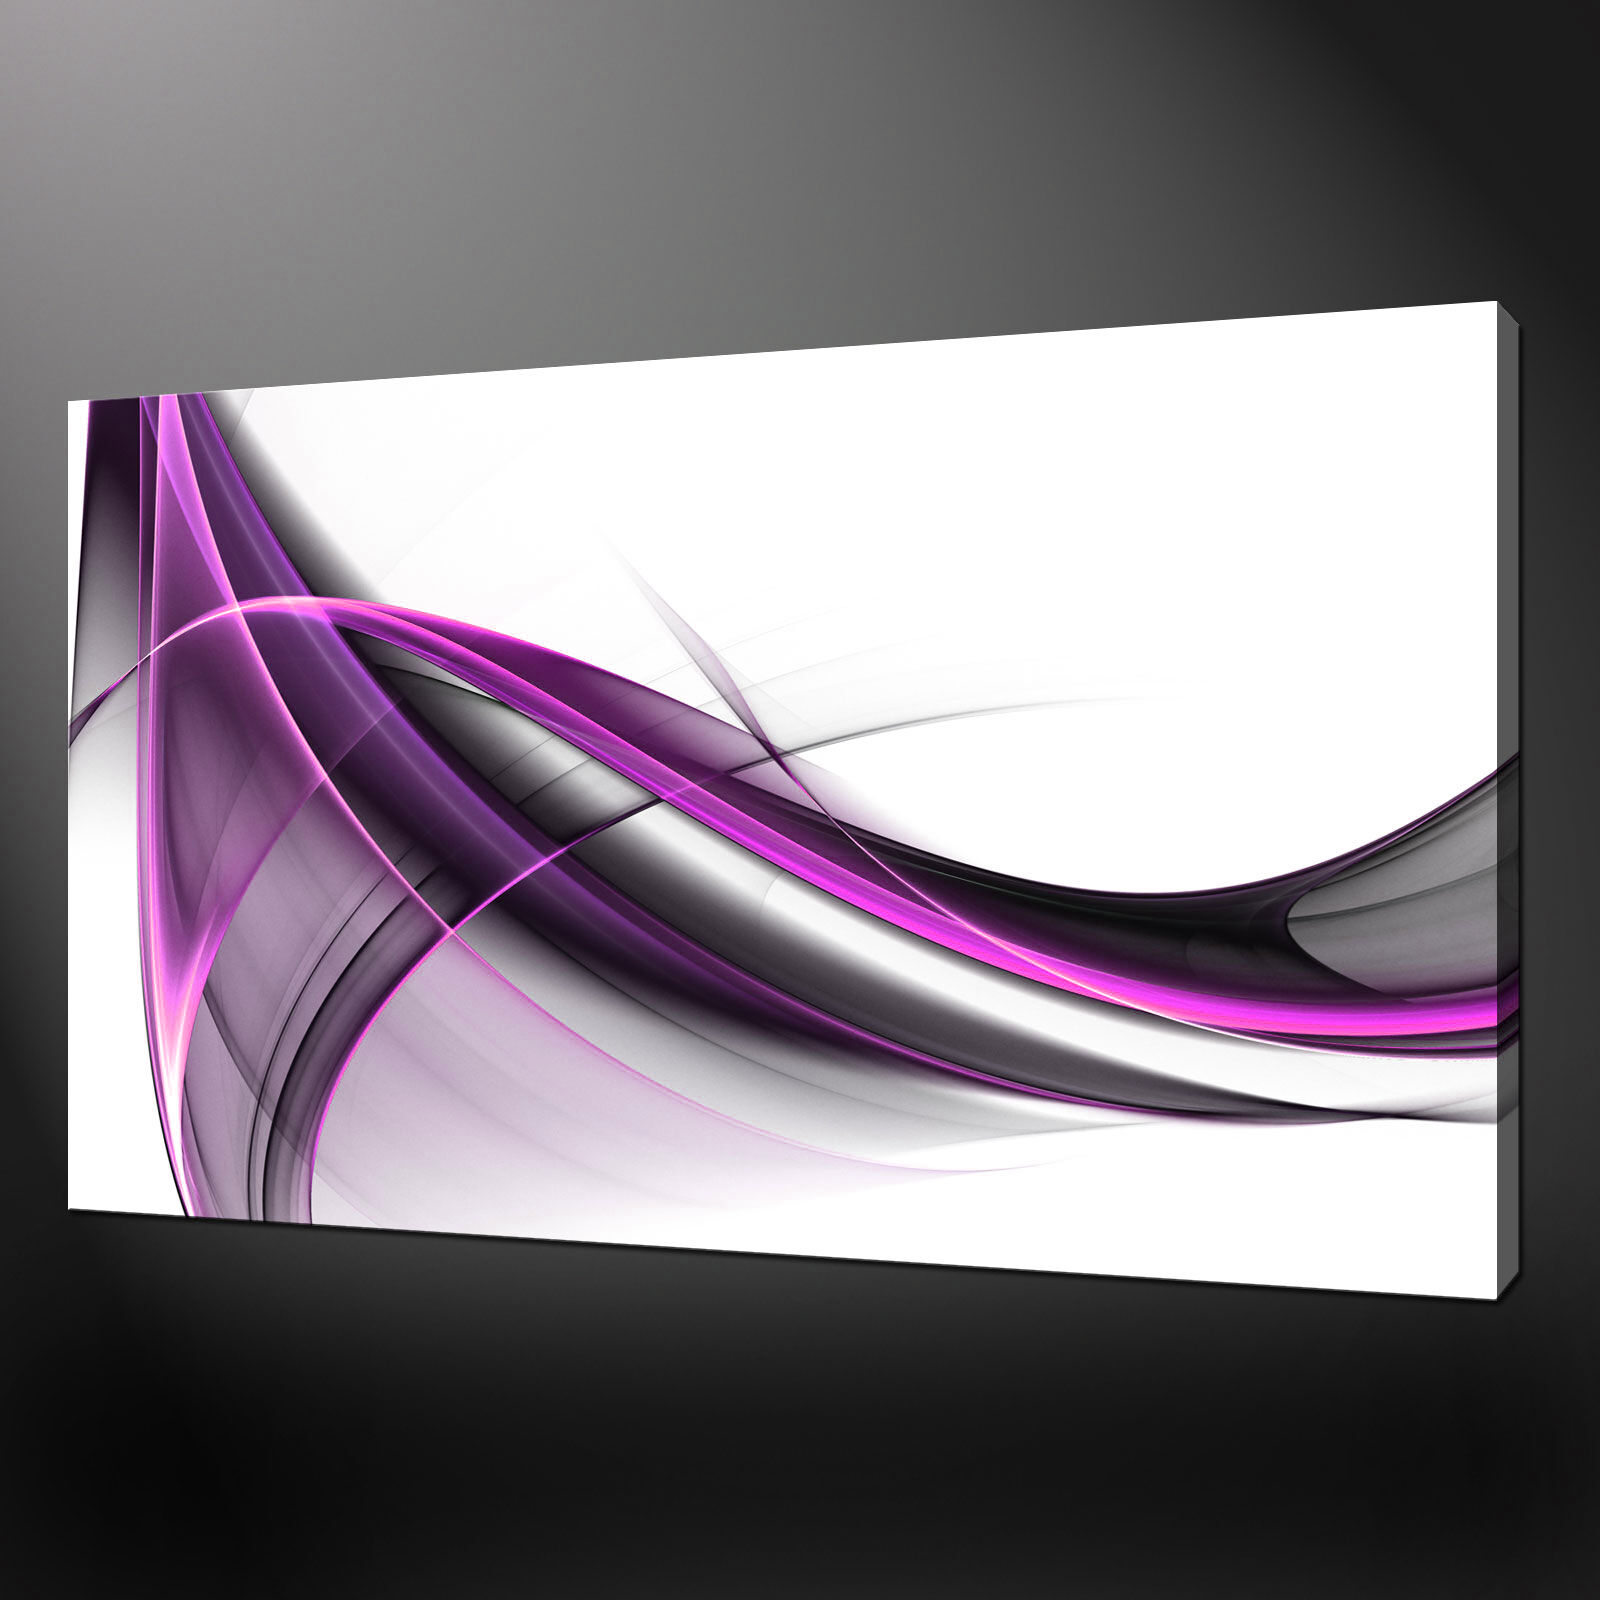 ABSTRACT WAVES CANVAS drucken PICTURE wand kunst FREE UK DELIVERY VARIETY OF GrößeS